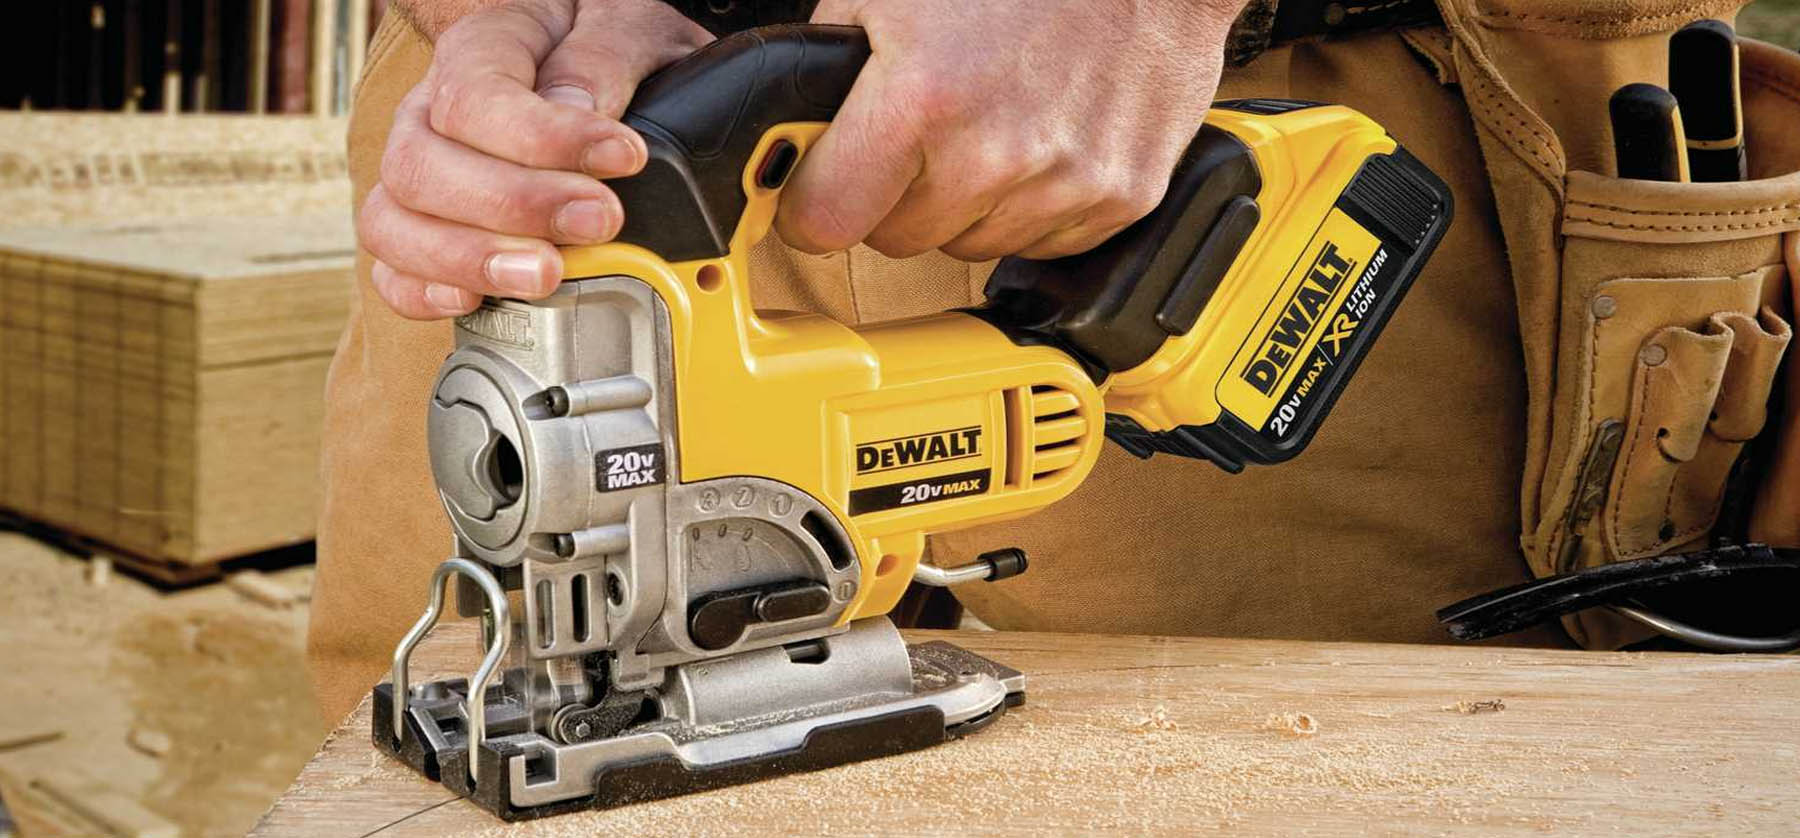 jigsaw cutting wood an essential beginners tool for woodworking